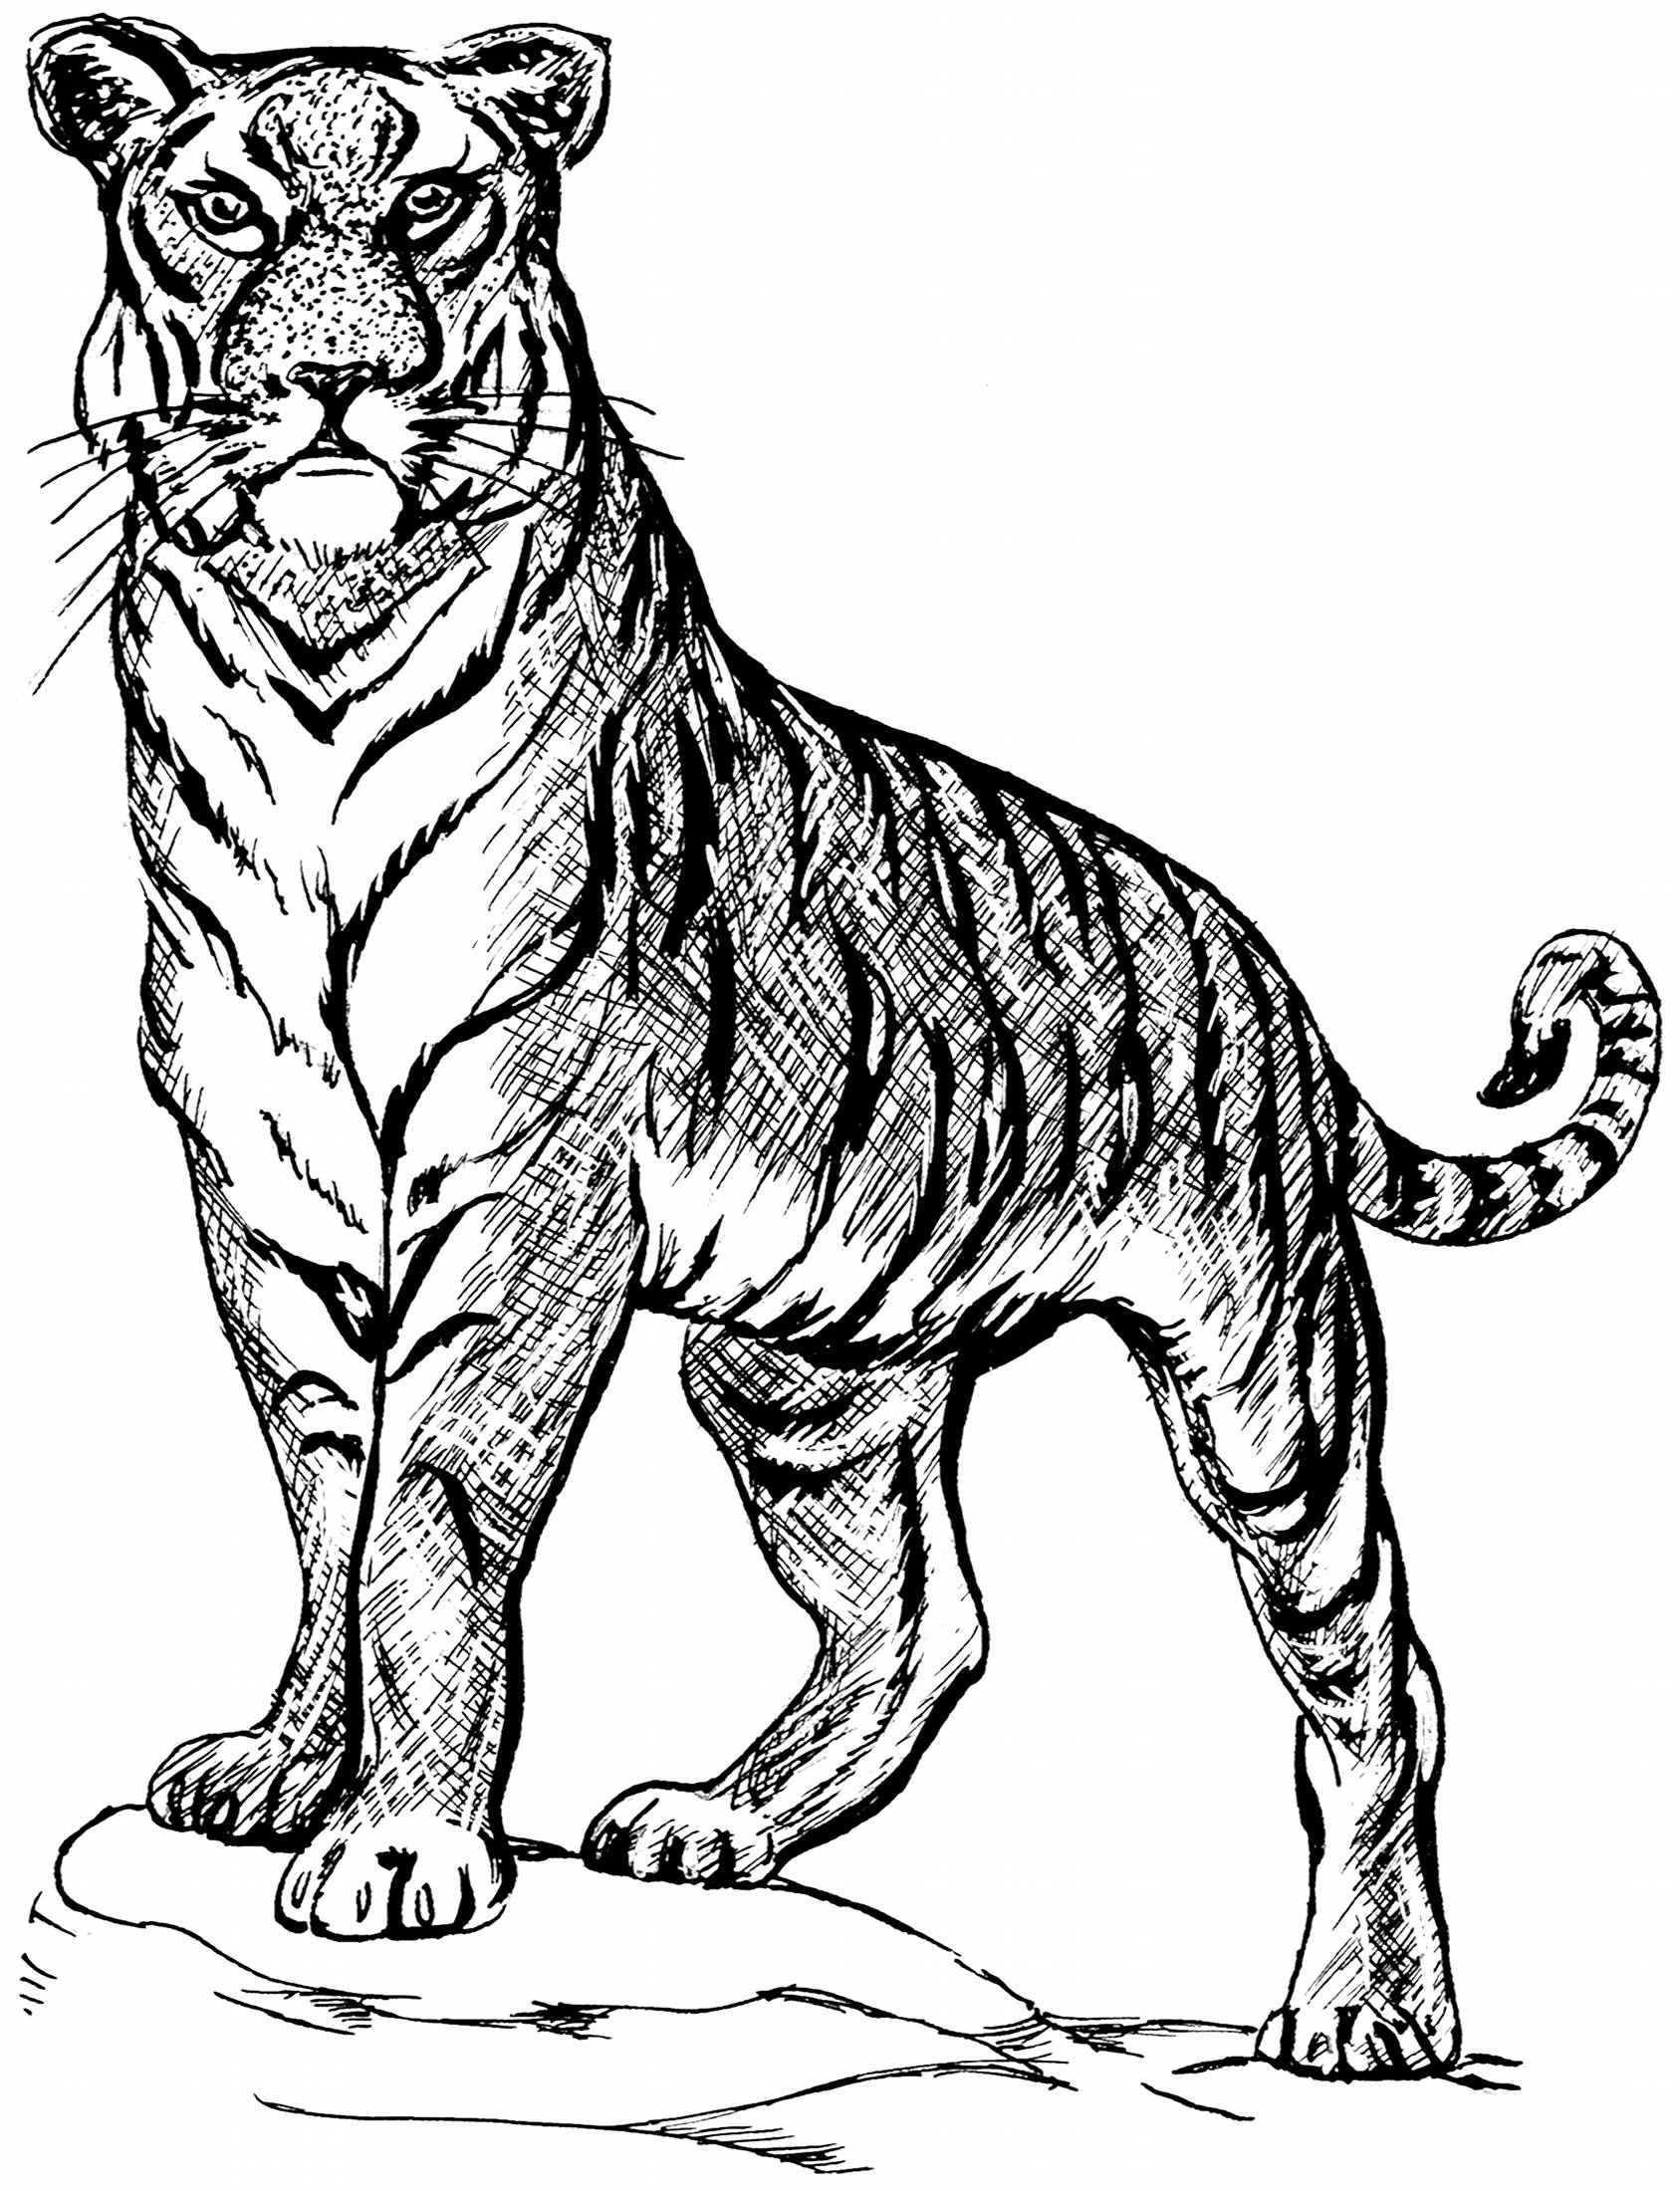 Line Drawing Tiger : Tiger line drawings for coloring